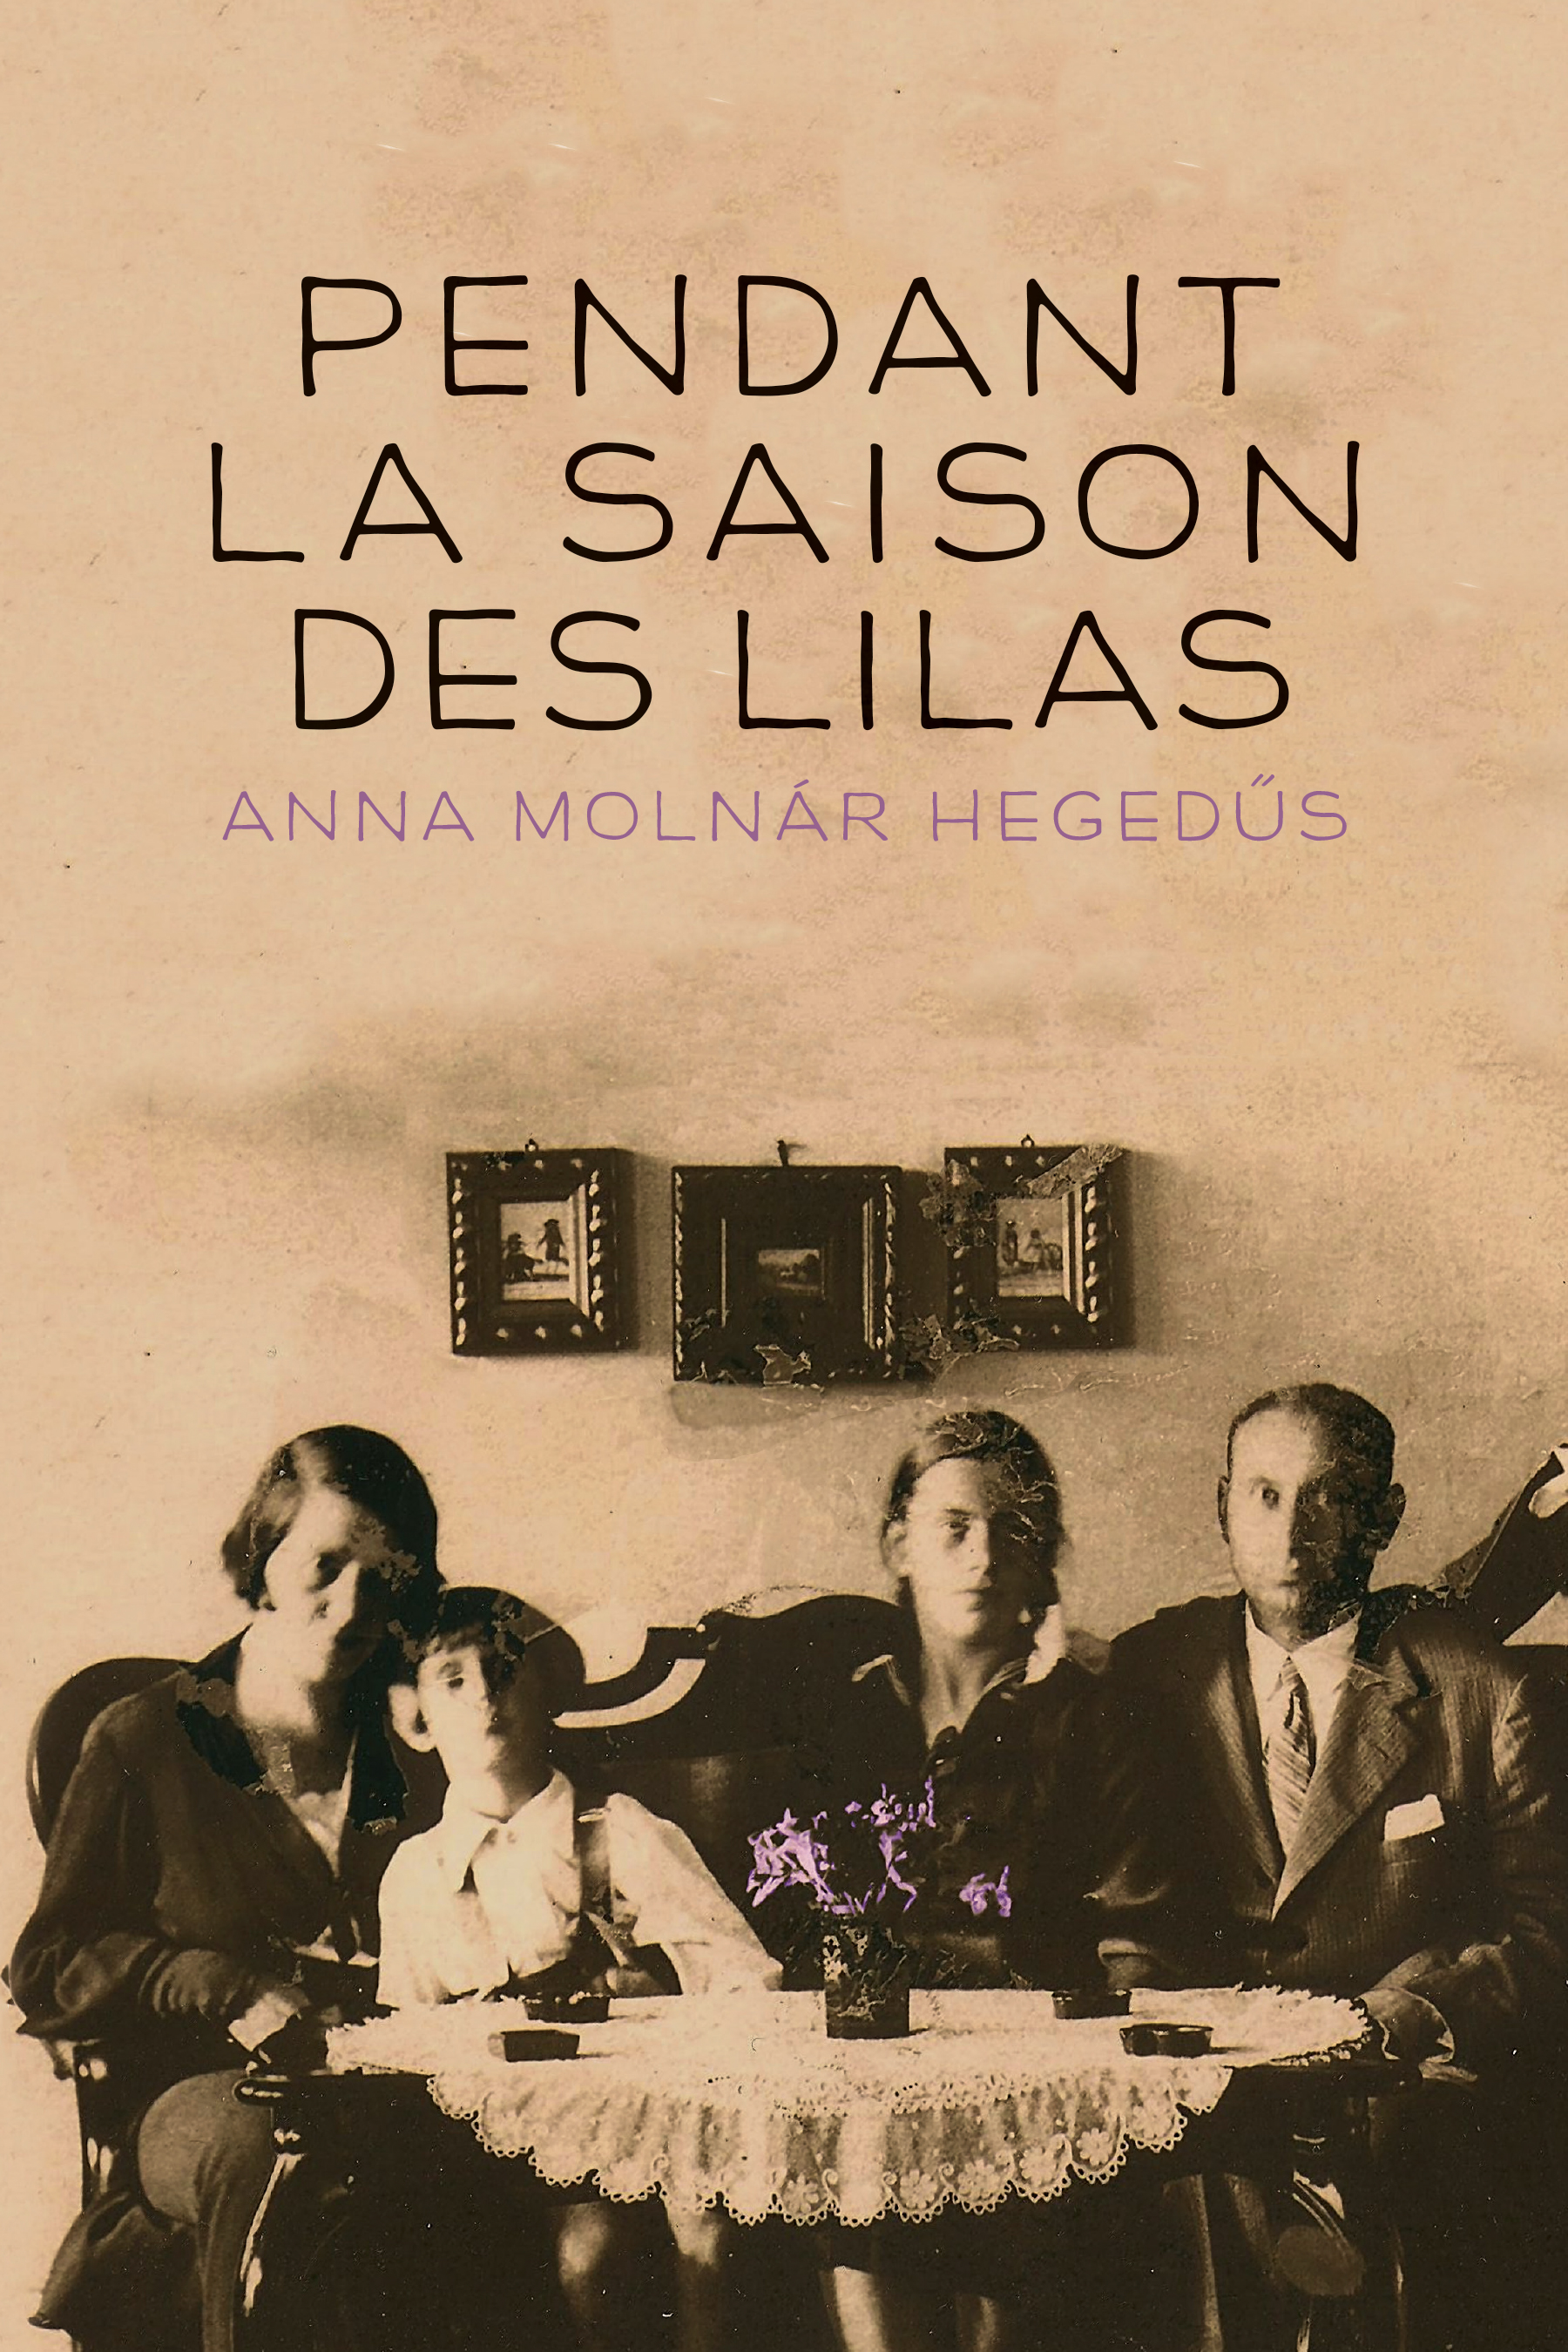 Au temps des lilas book cover